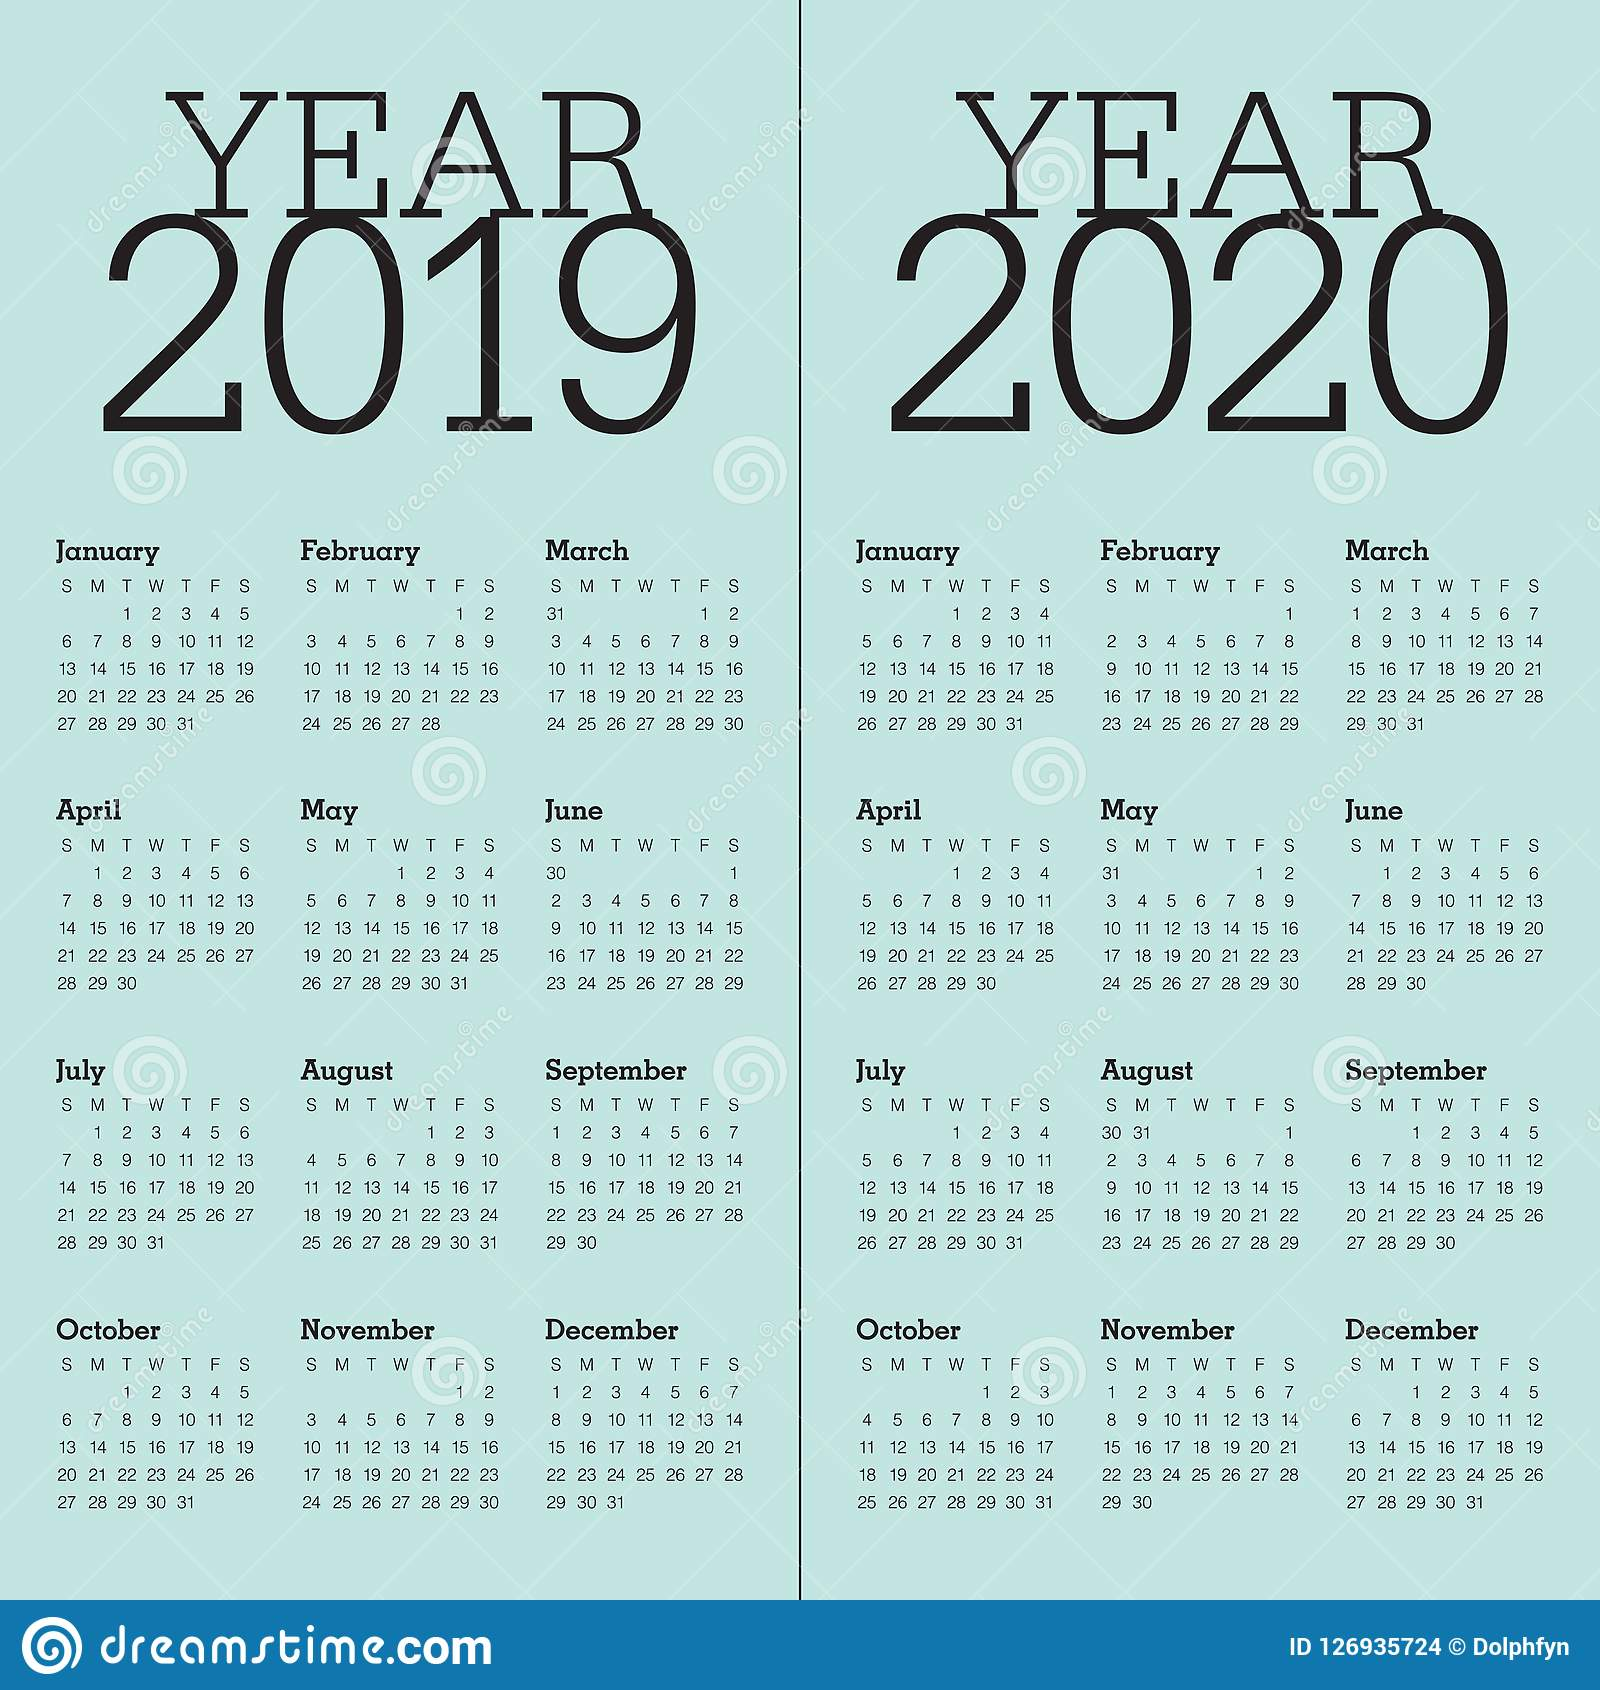 Calendario Contest Hf 2020.Year 2019 2020 Calendar Vector Design Template Stock Vector